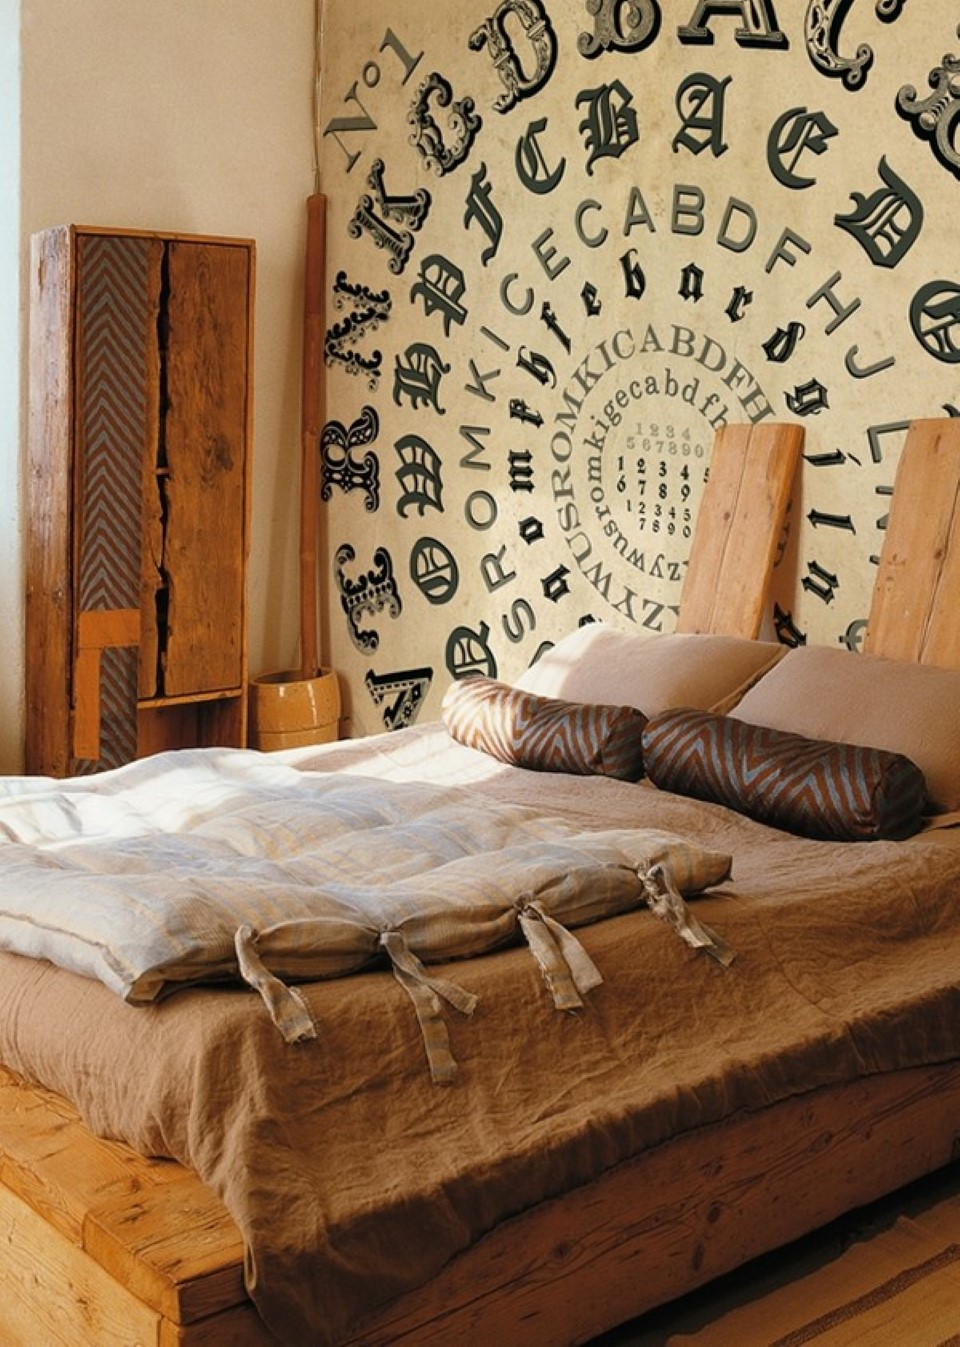 Best and creative wall decor to add artistic tone in the - Wall hangings for bedroom ...